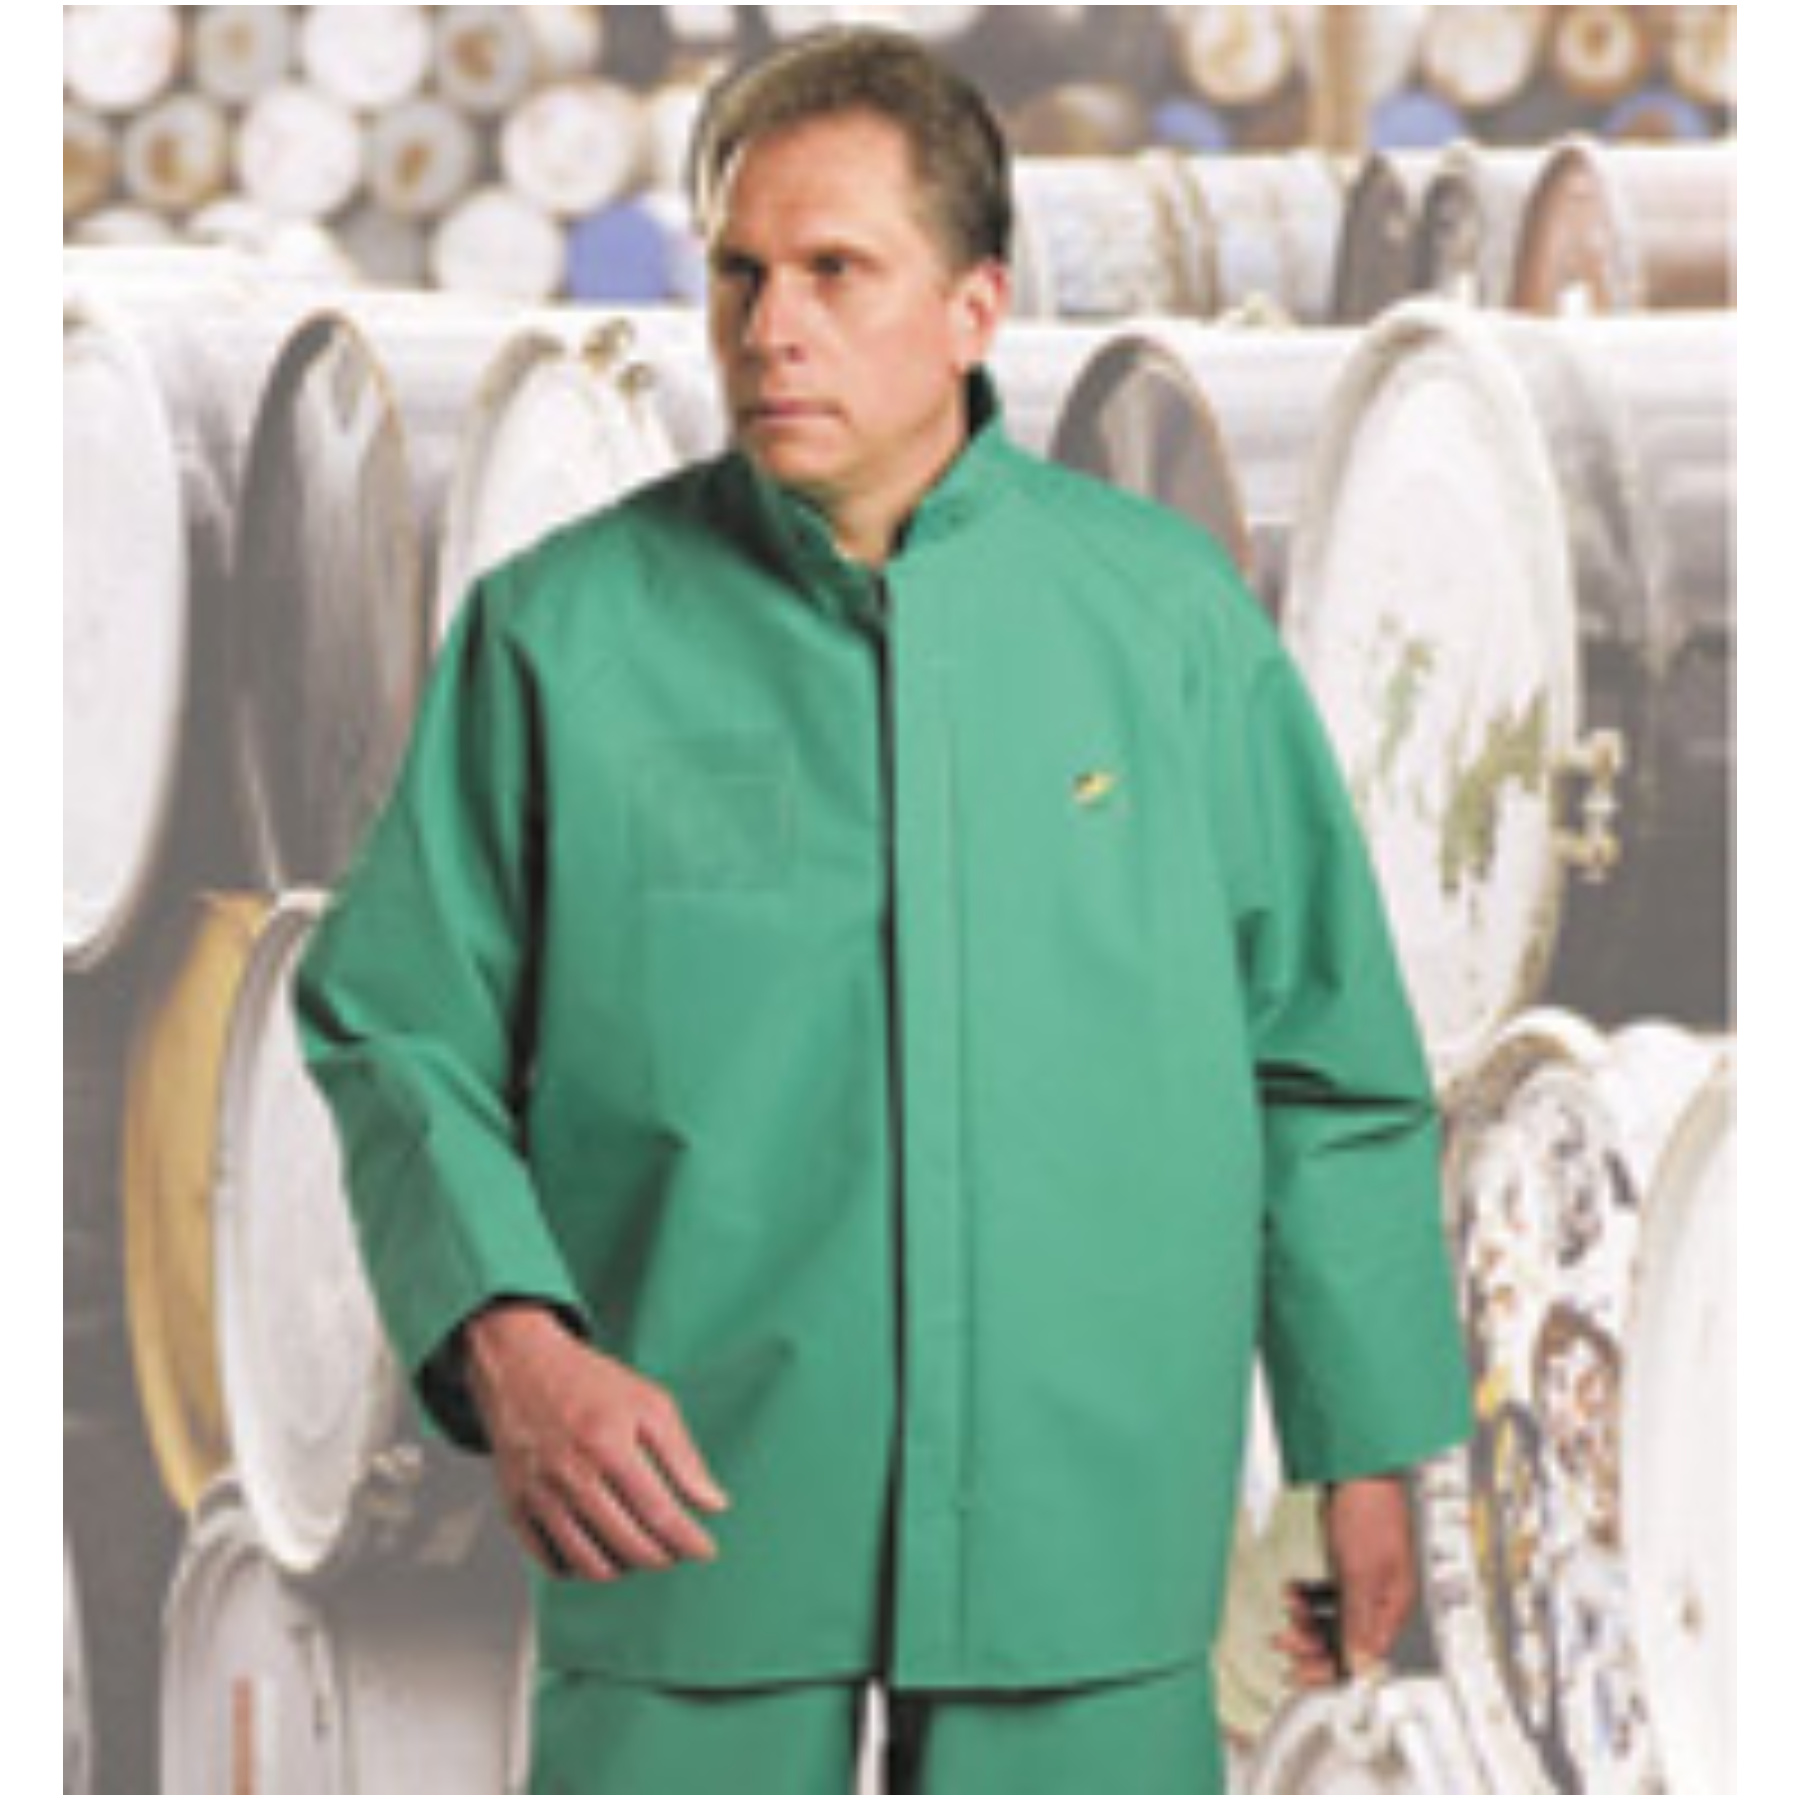 Bata/Onguard Large Green Chemtex 3.5 mil PVC On Nylon Polyester Chemical Protection Jacket With Storm Flap Over Front Zipper Clo